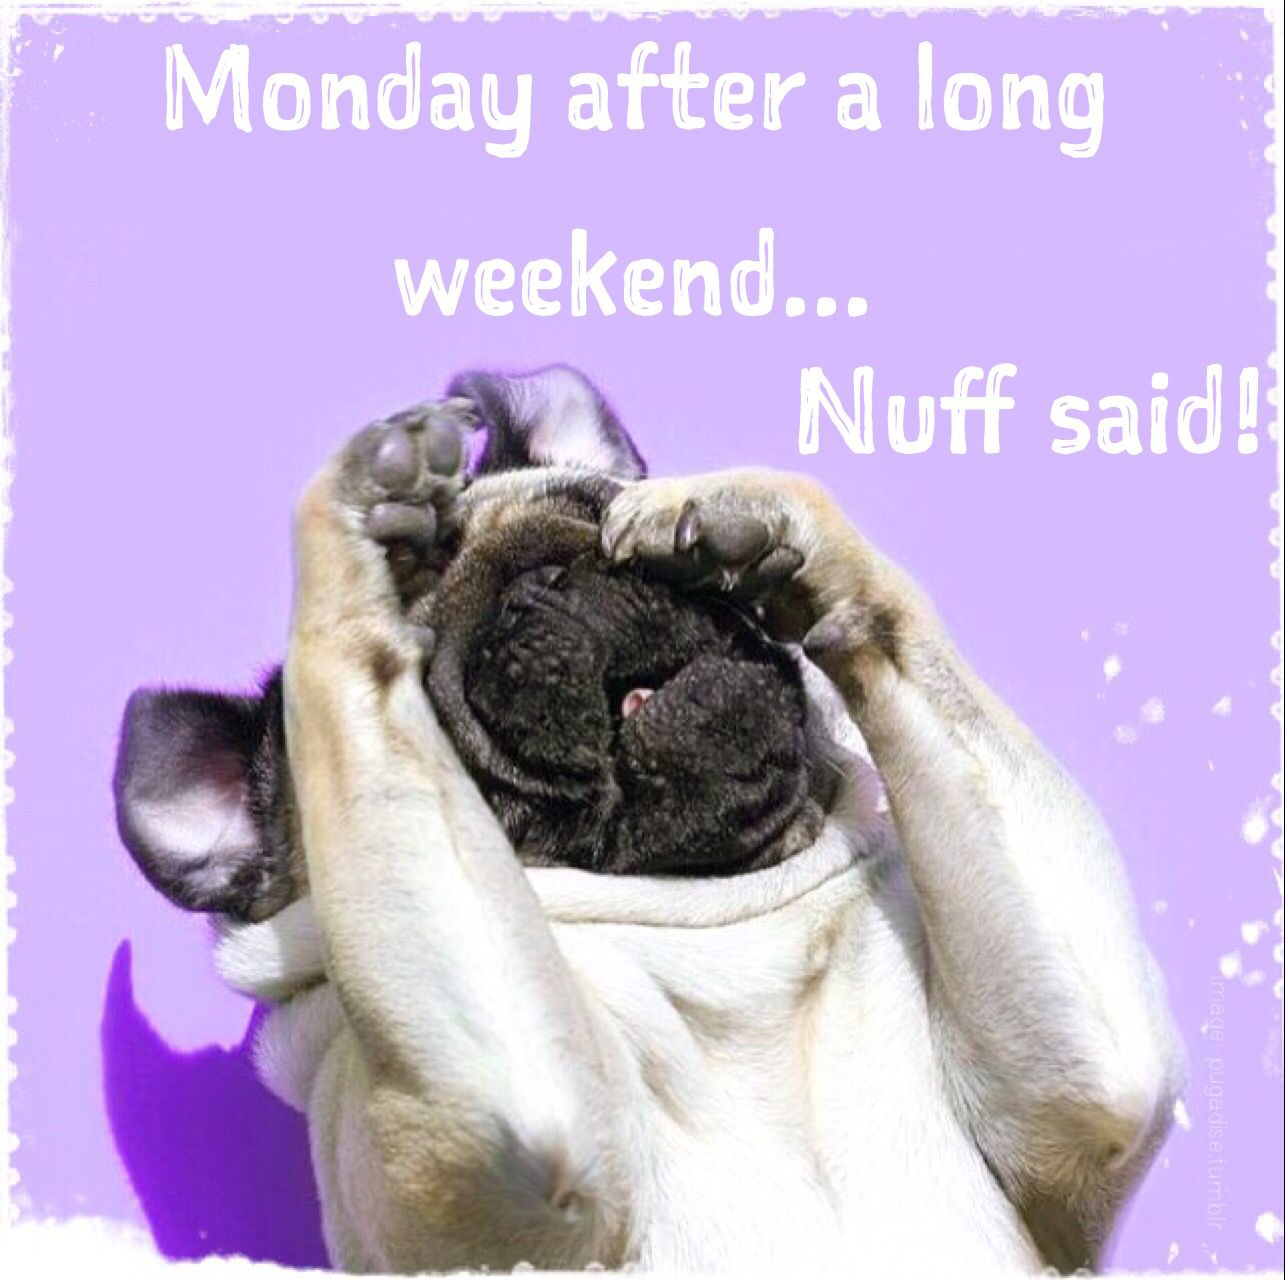 Monday humor Animal funny Cute dog Long weekend